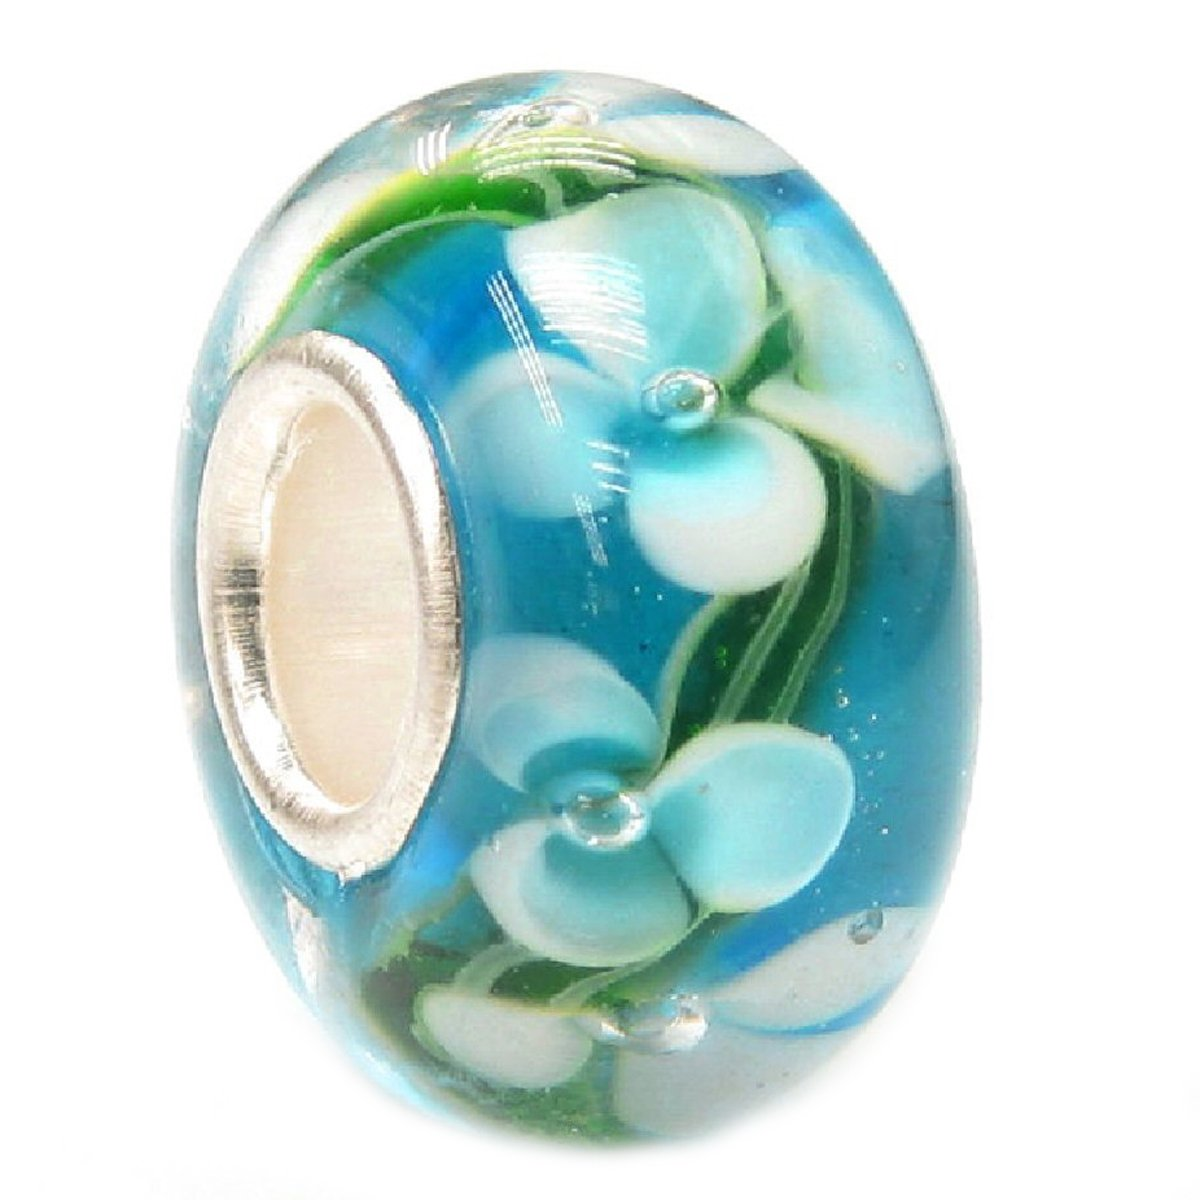 Sterling Silver Turquoise Hawaii Flower Glass Bead F/ European Charm 3mm Snake Chain Bracelets 12.5mm Queenberry PA1825X1